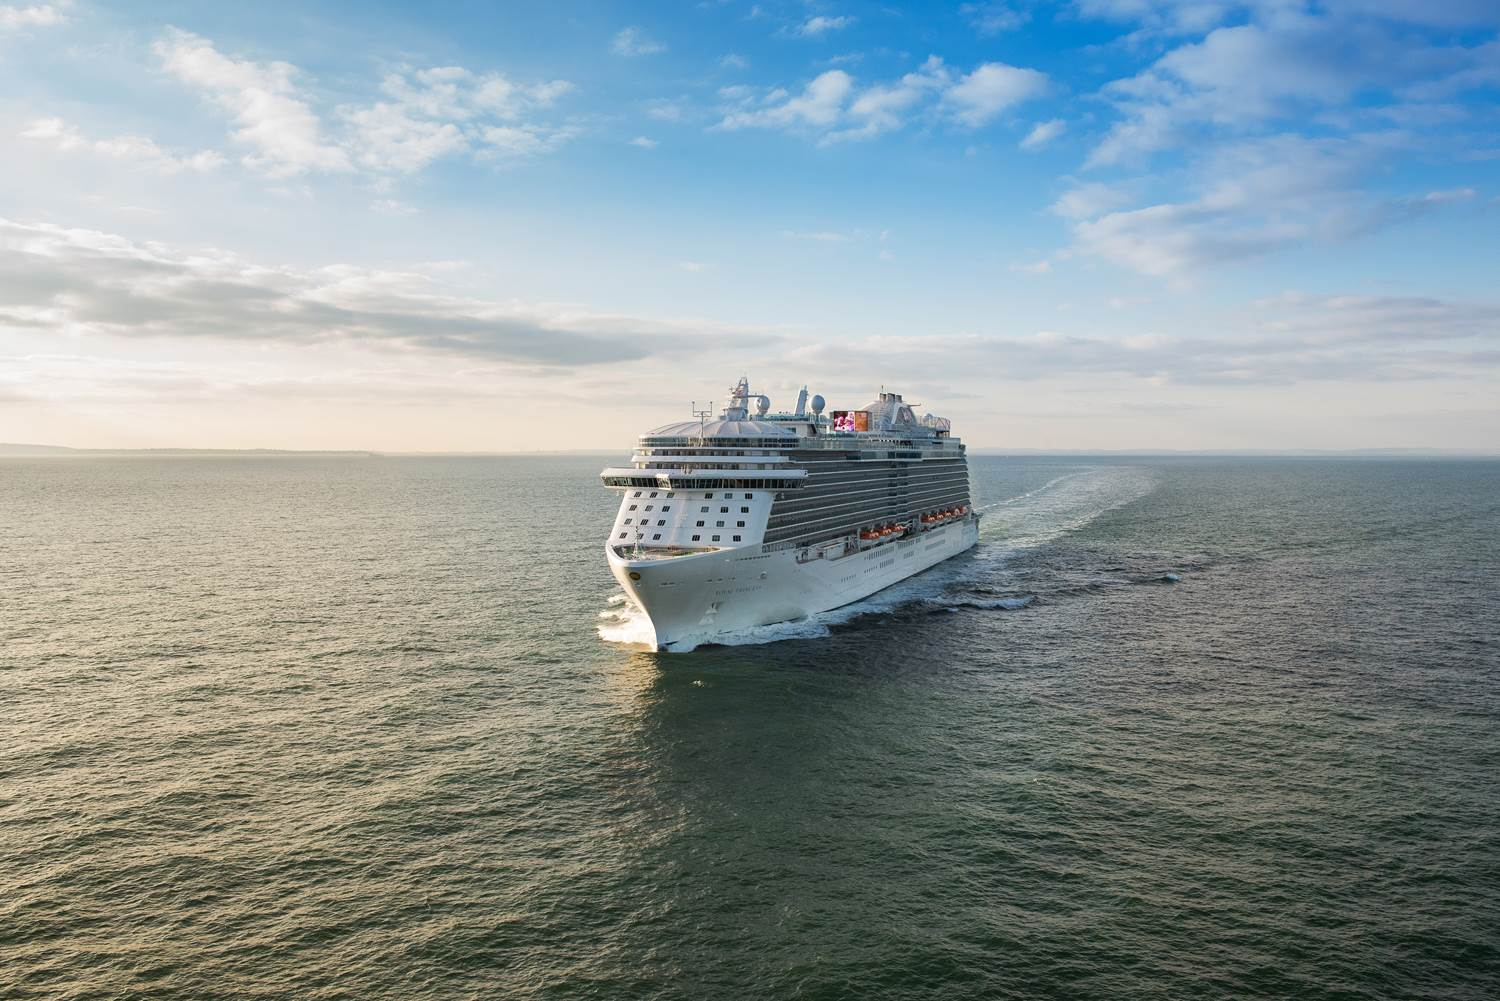 New Princess Ship to Launch in 2019